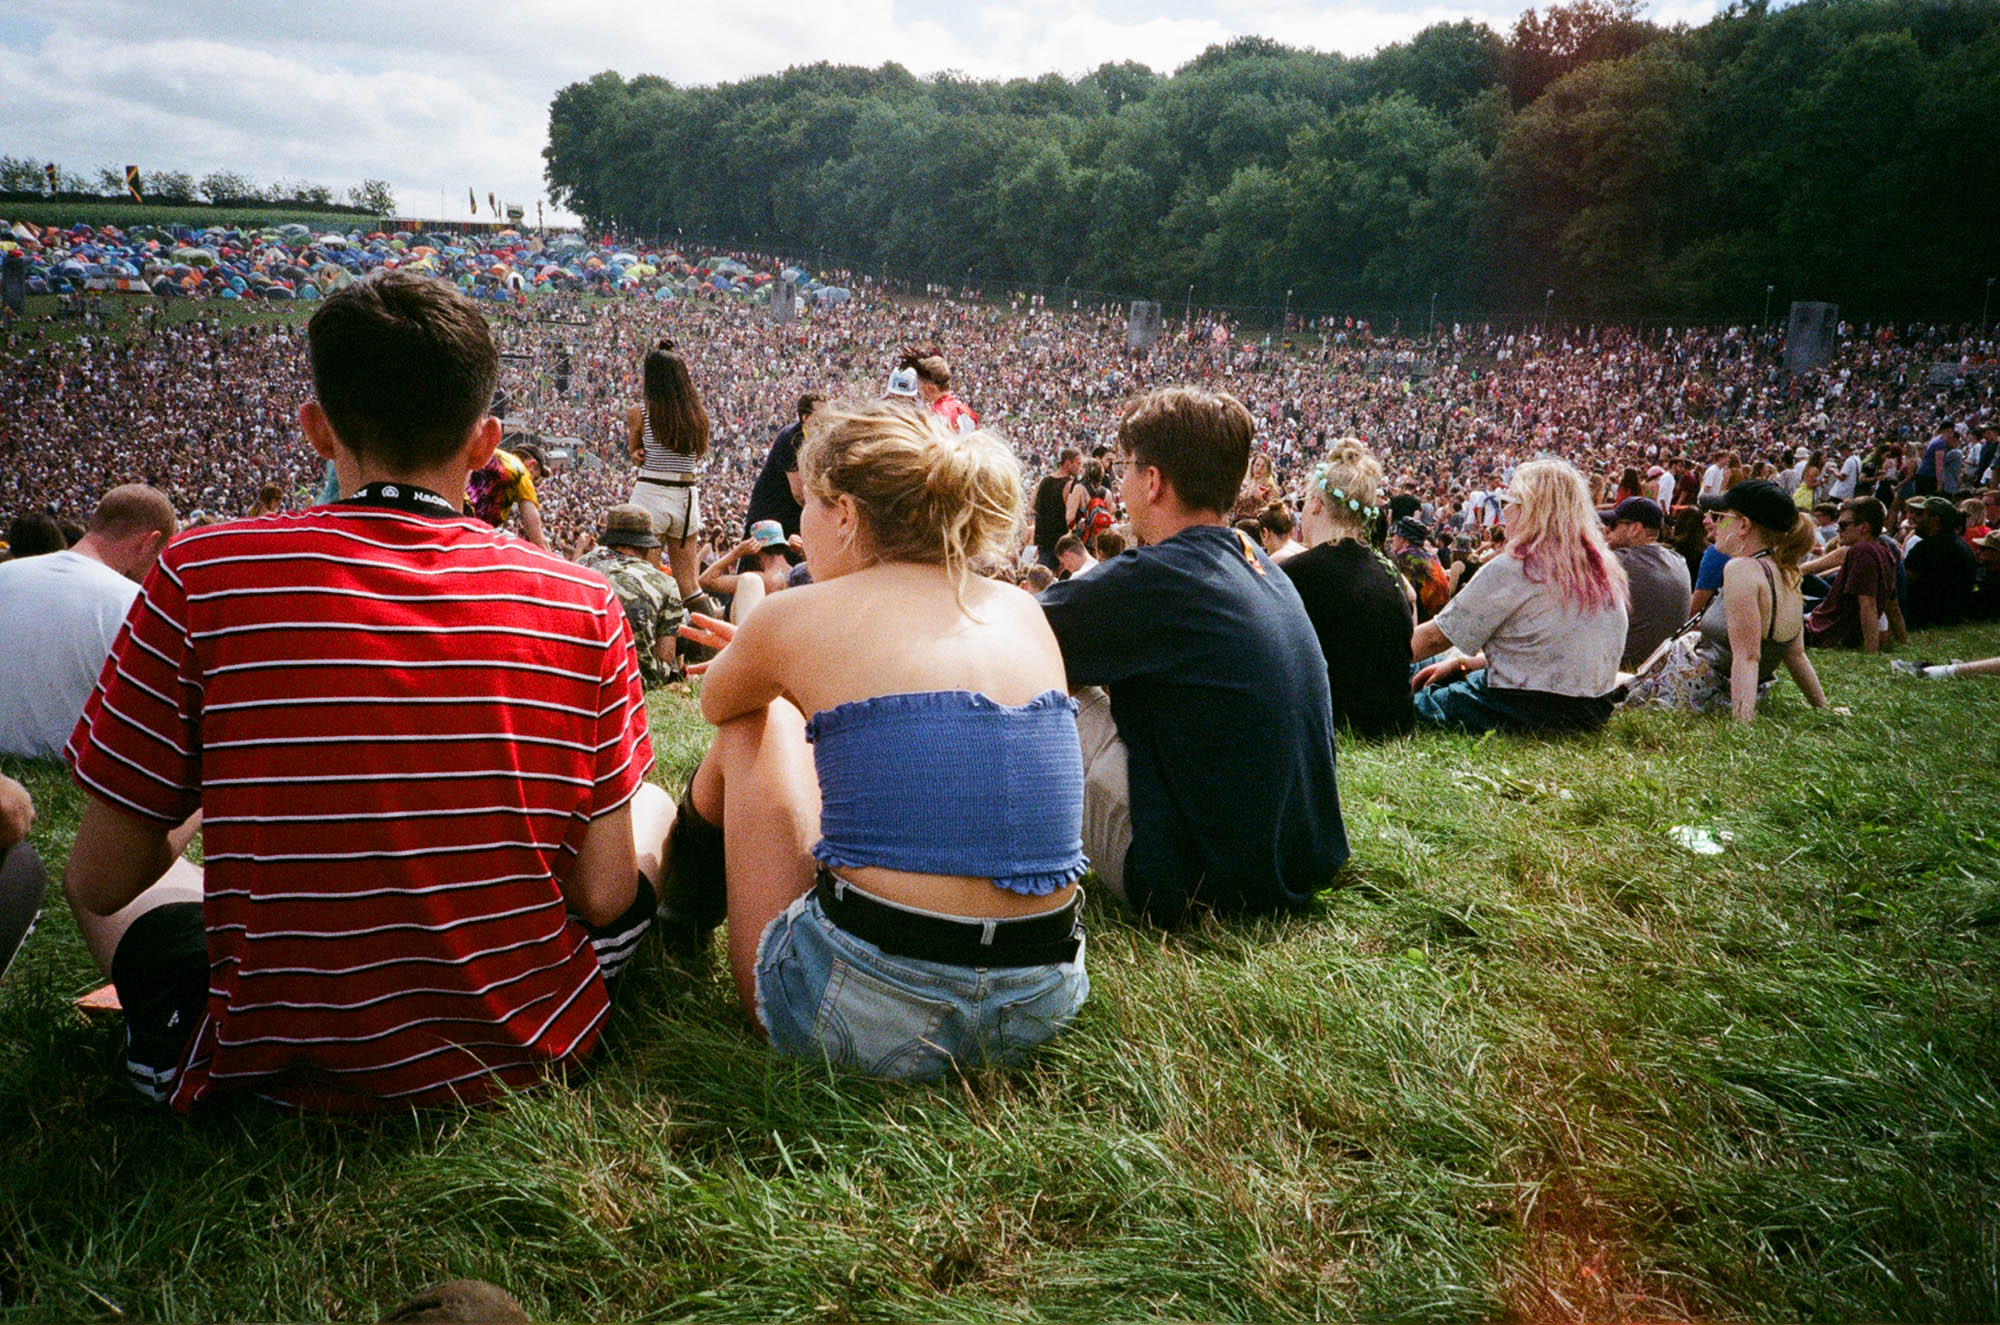 Crowds at Boomtown